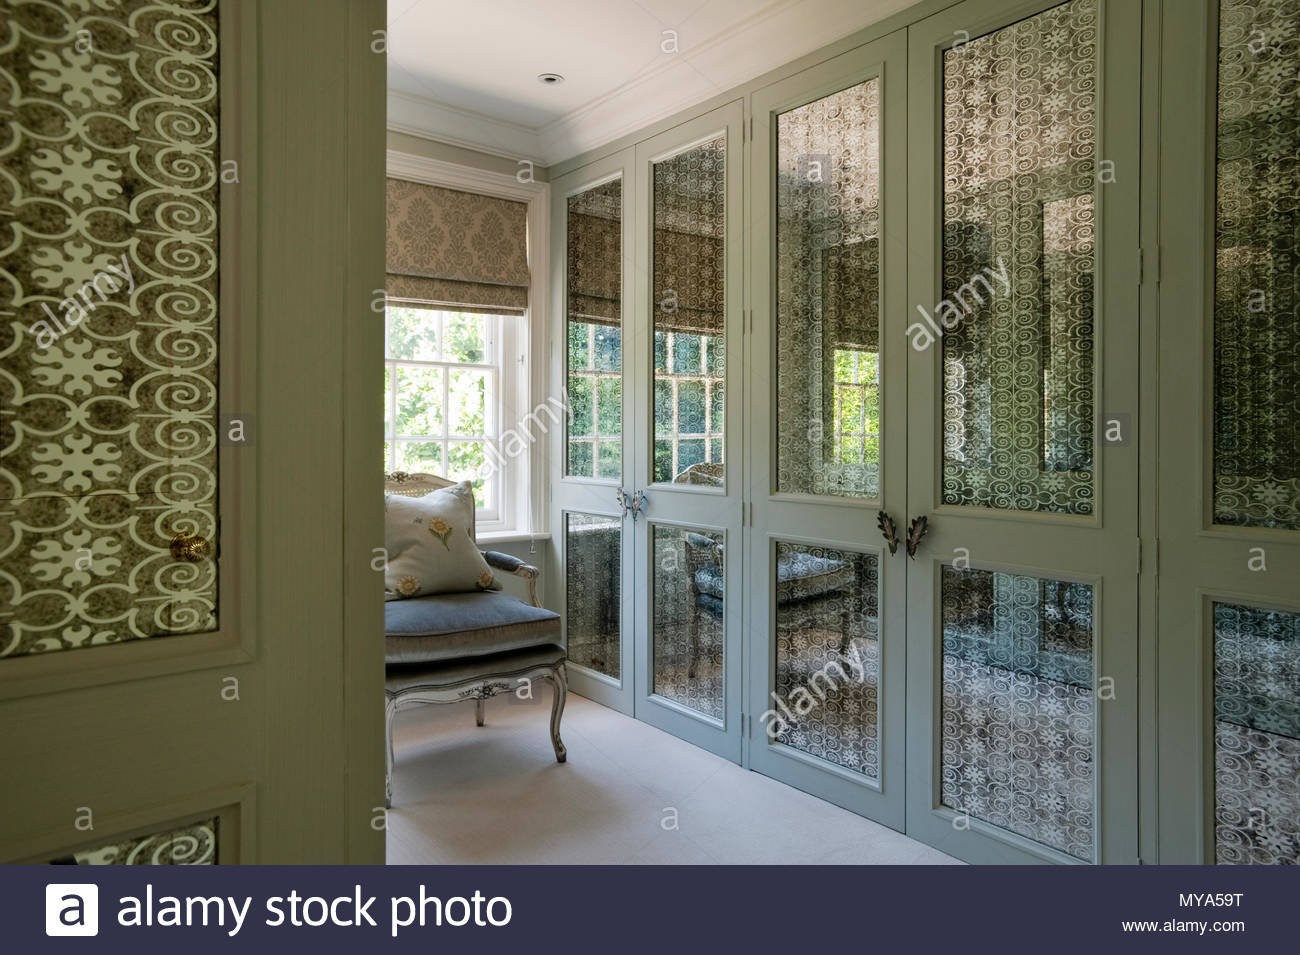 Elegant armchair and wardrobes - Stock Image